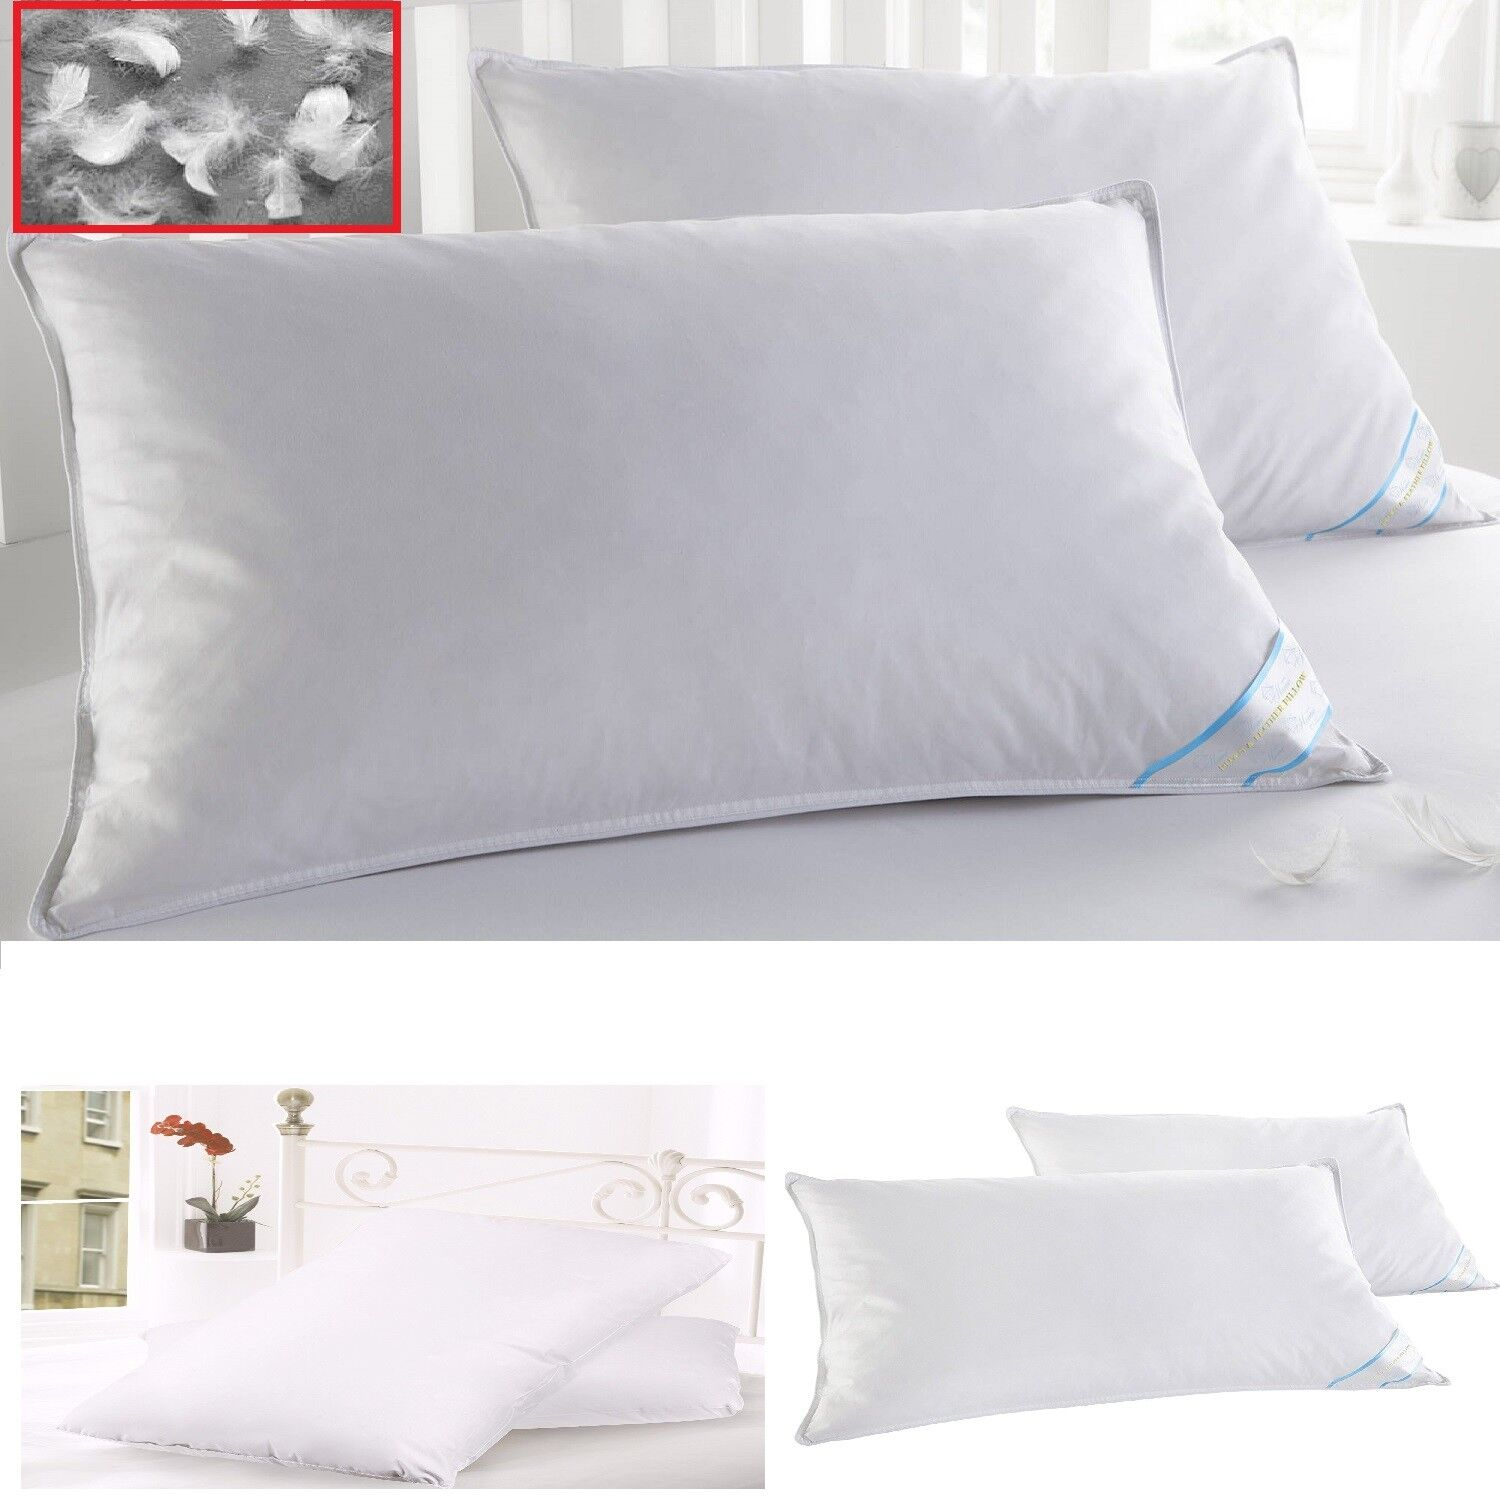 arrange ways pillow microfibre along custom to relaxing dk super full linens size queen bed hotel quality with superior king high pillows sunshiny